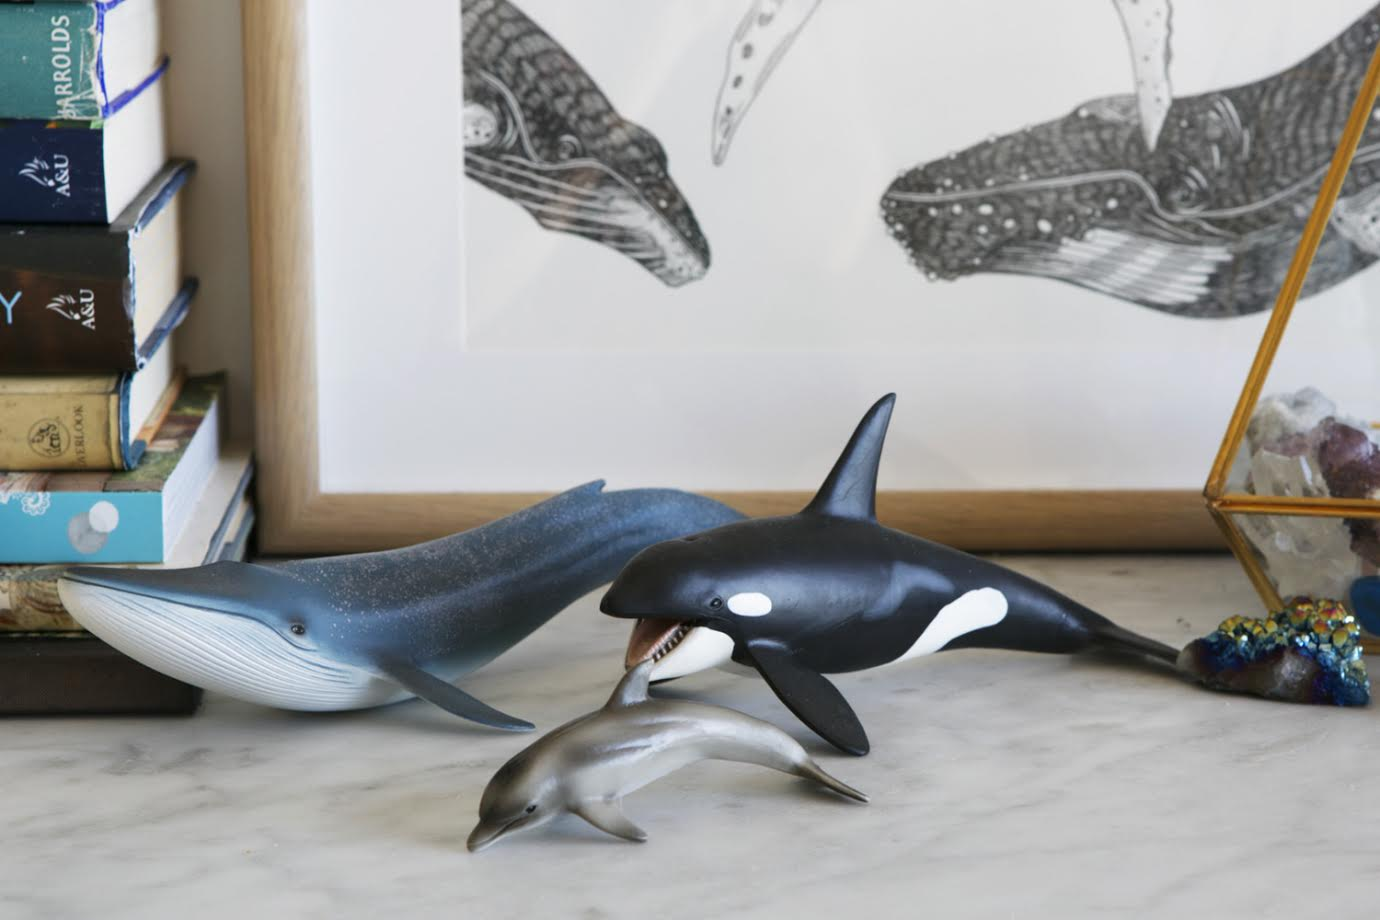 Whale Ornaments / A Creative Home..with Artist Michelle Fleur in Perth, Australia // Surelysimple.com